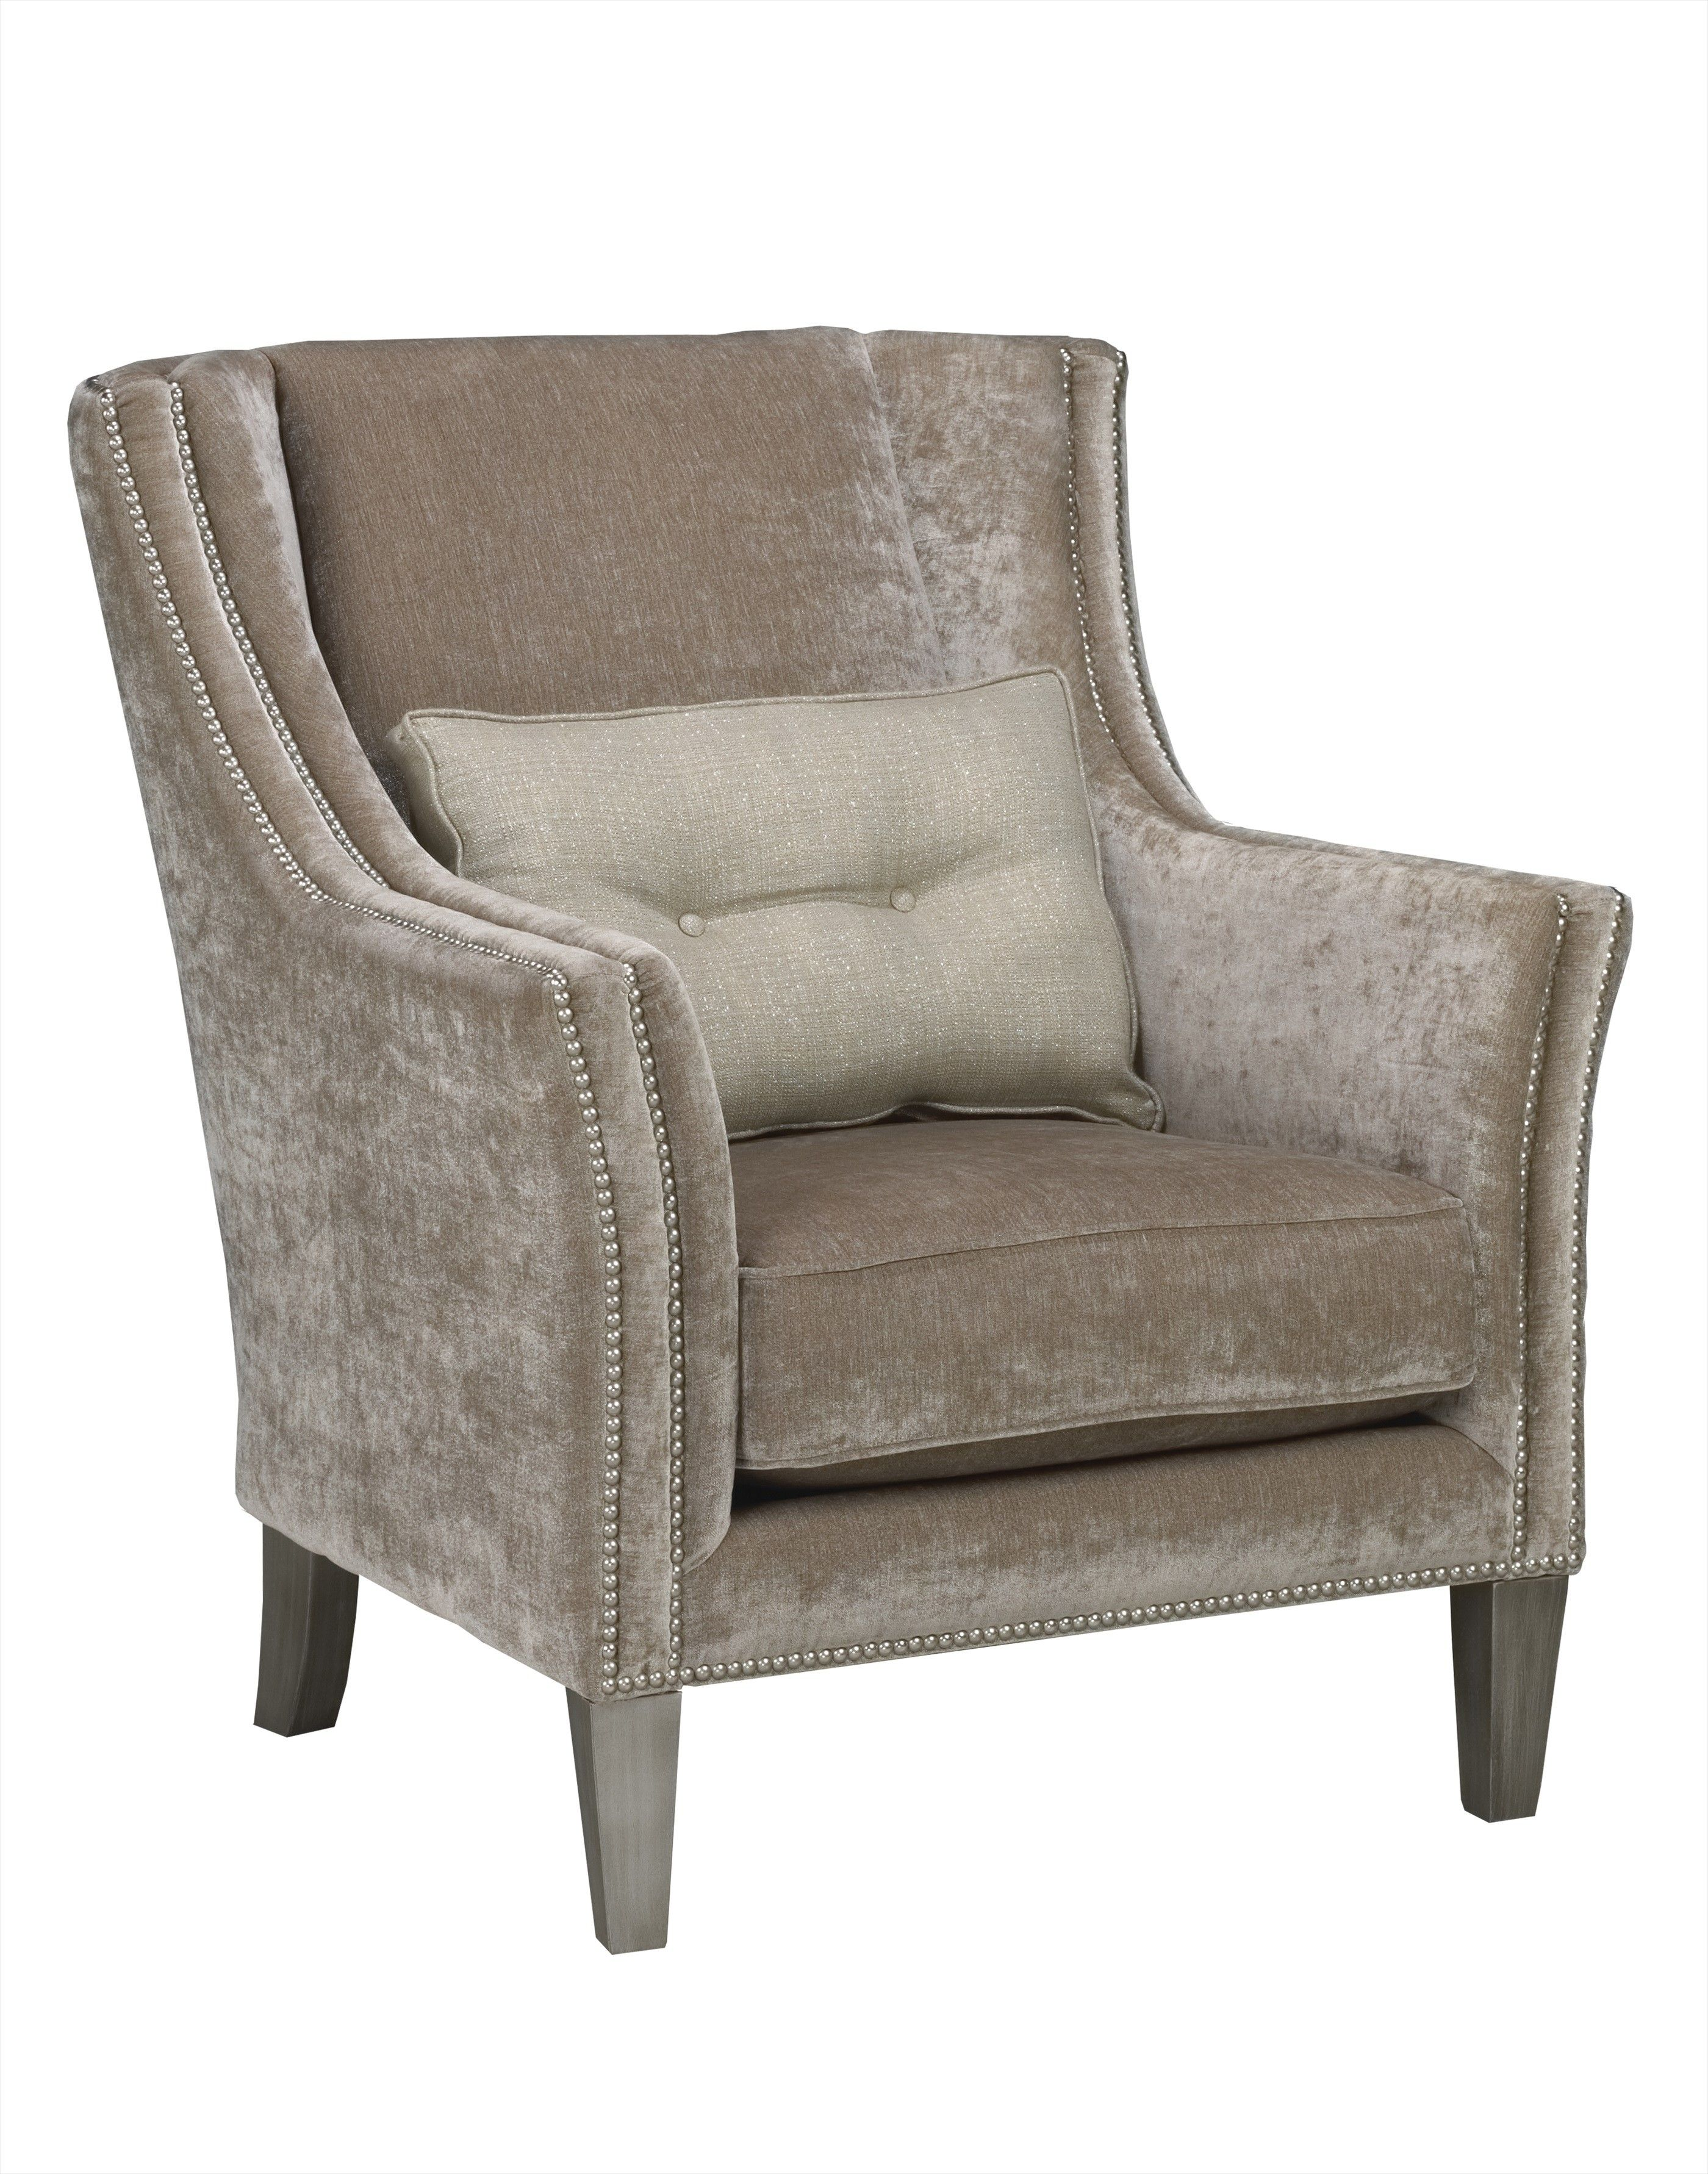 Accent Furniture For Living Room Sofa Set Stylish Gray Velvet Upholstered Chairs With Chic Cushions As Inspiring Furnishing Designs